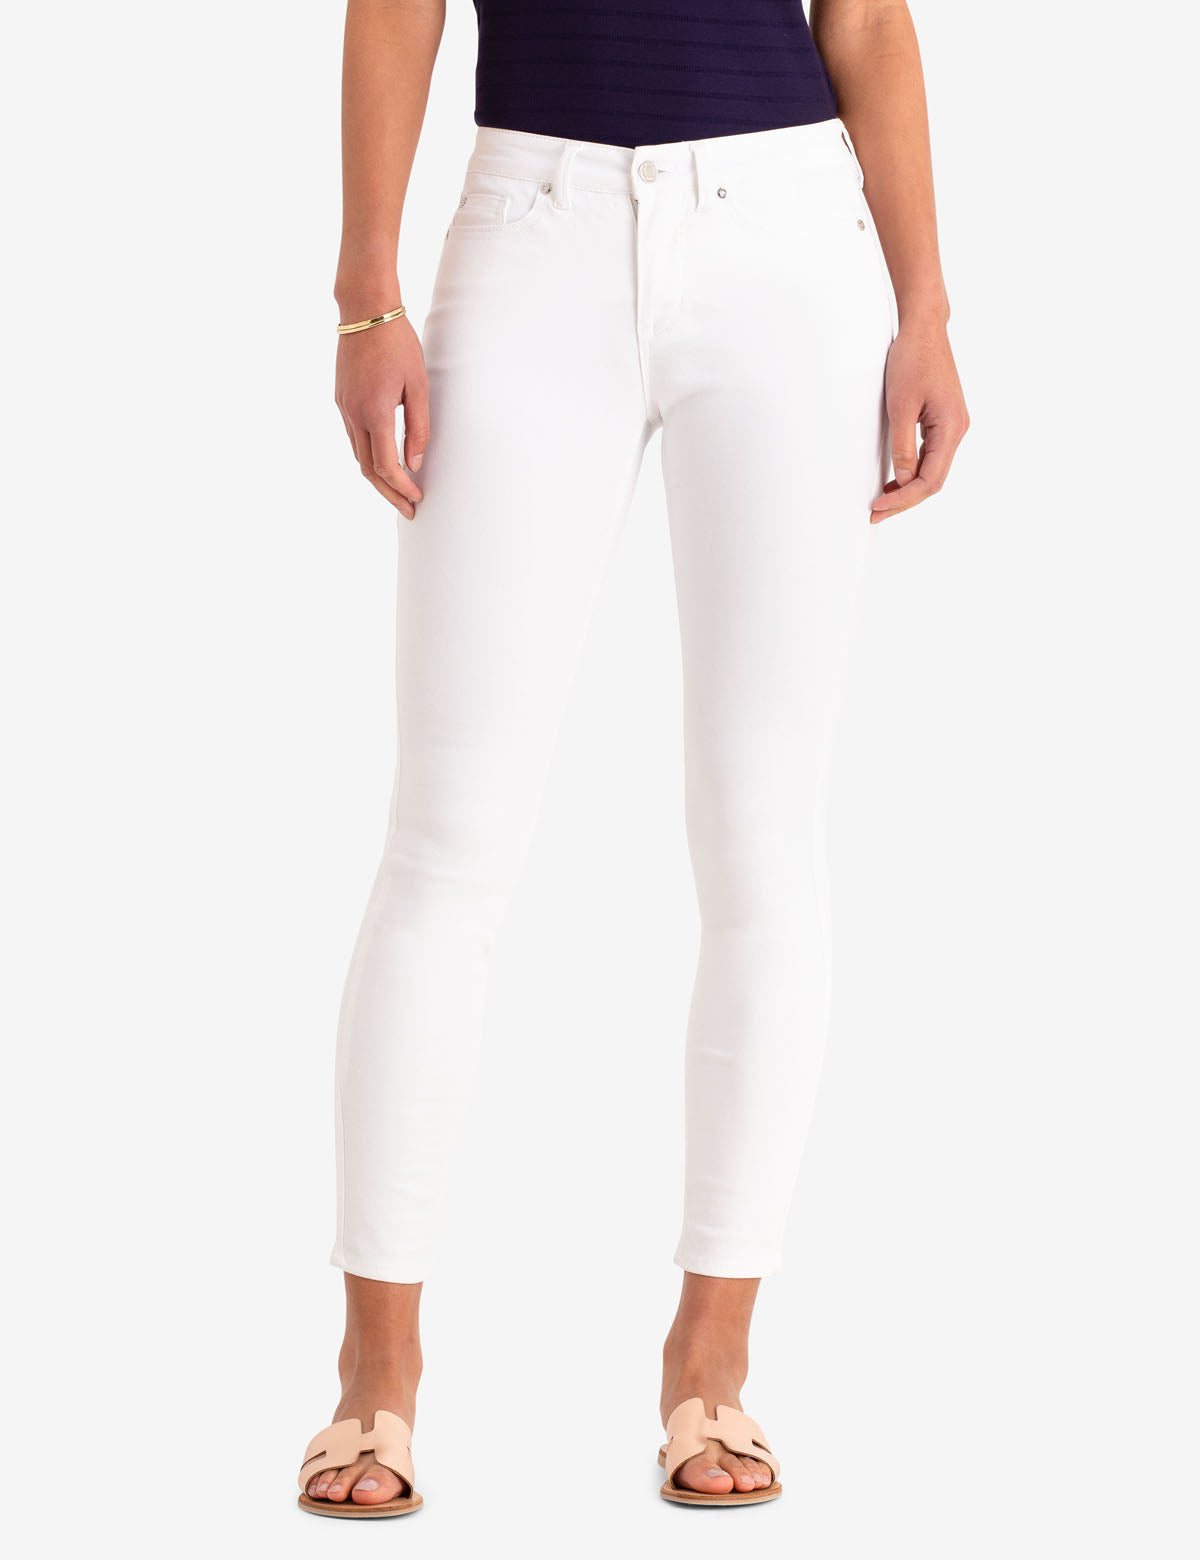 WHITE MID RISE JEGGINGS